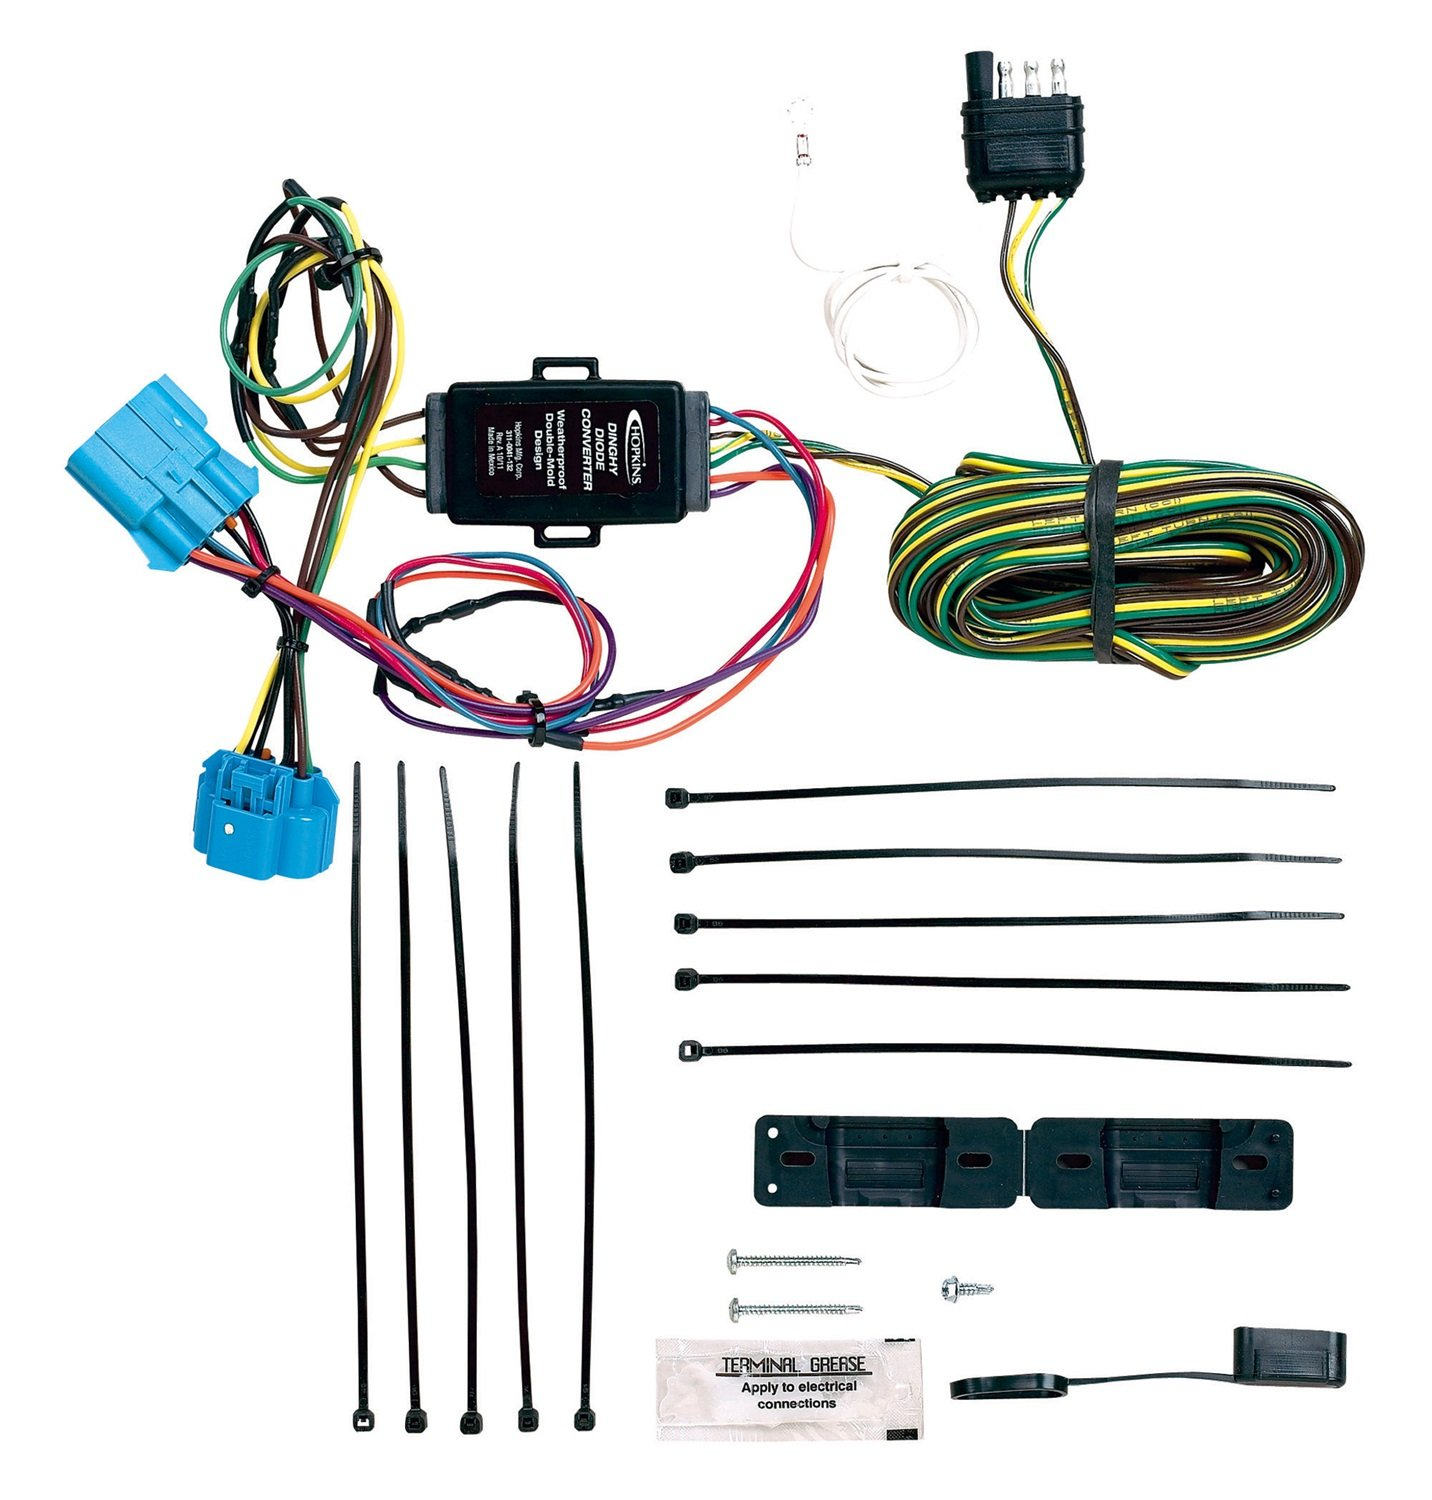 Vehicle Wiring Harness Kit on headlights kit, hose kit, exhaust kit, bumper kit, timing belt kit, transmission kit, air bag kit, fan kit, fuel line kit, car wiring kit, strat wiring kit, wiring light kit, wiring tools kit, coil kit, wiring connector kit, oil cooler kit, wiring thermostat, timing chain kit,